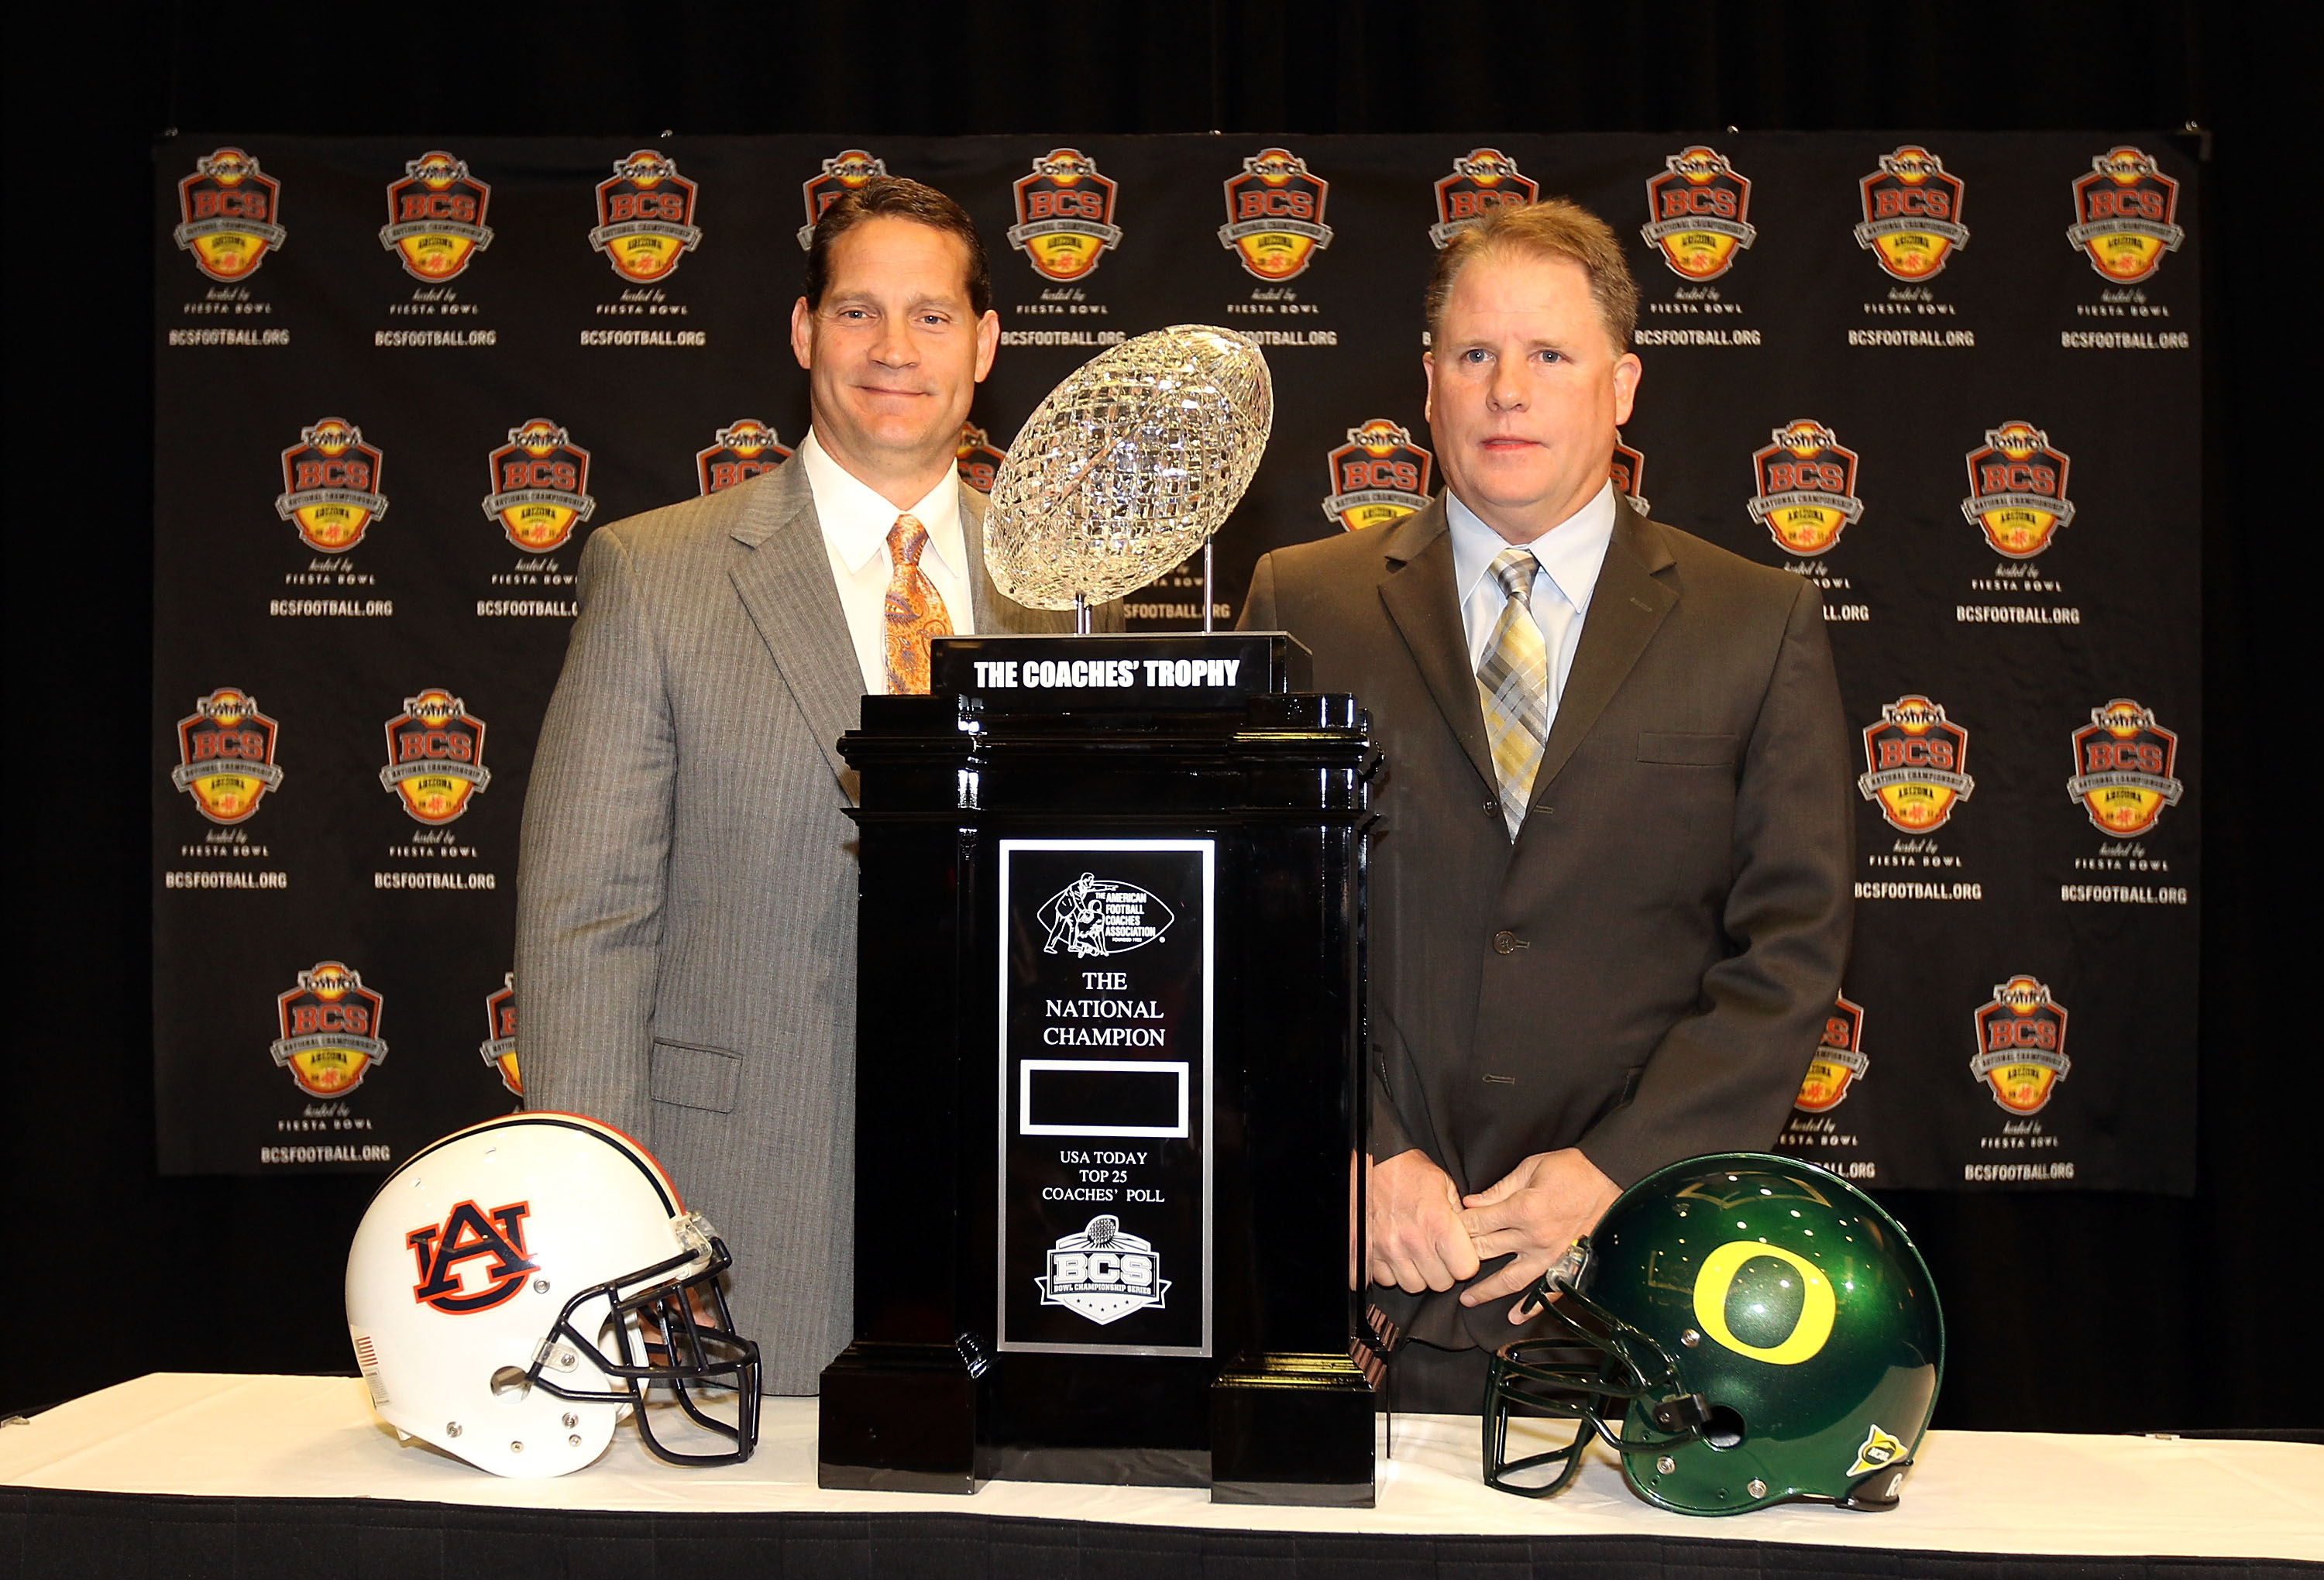 SCOTTSDALE, AZ - JANUARY 09:  Head coaches Gene Chizik of the Auburn Tigers and Chip Kelly of the Oregon Ducks pose together with the coaches trophy during a press conference for the Tostitos BCS National Championship Game at the JW Marriott Camelback Inn